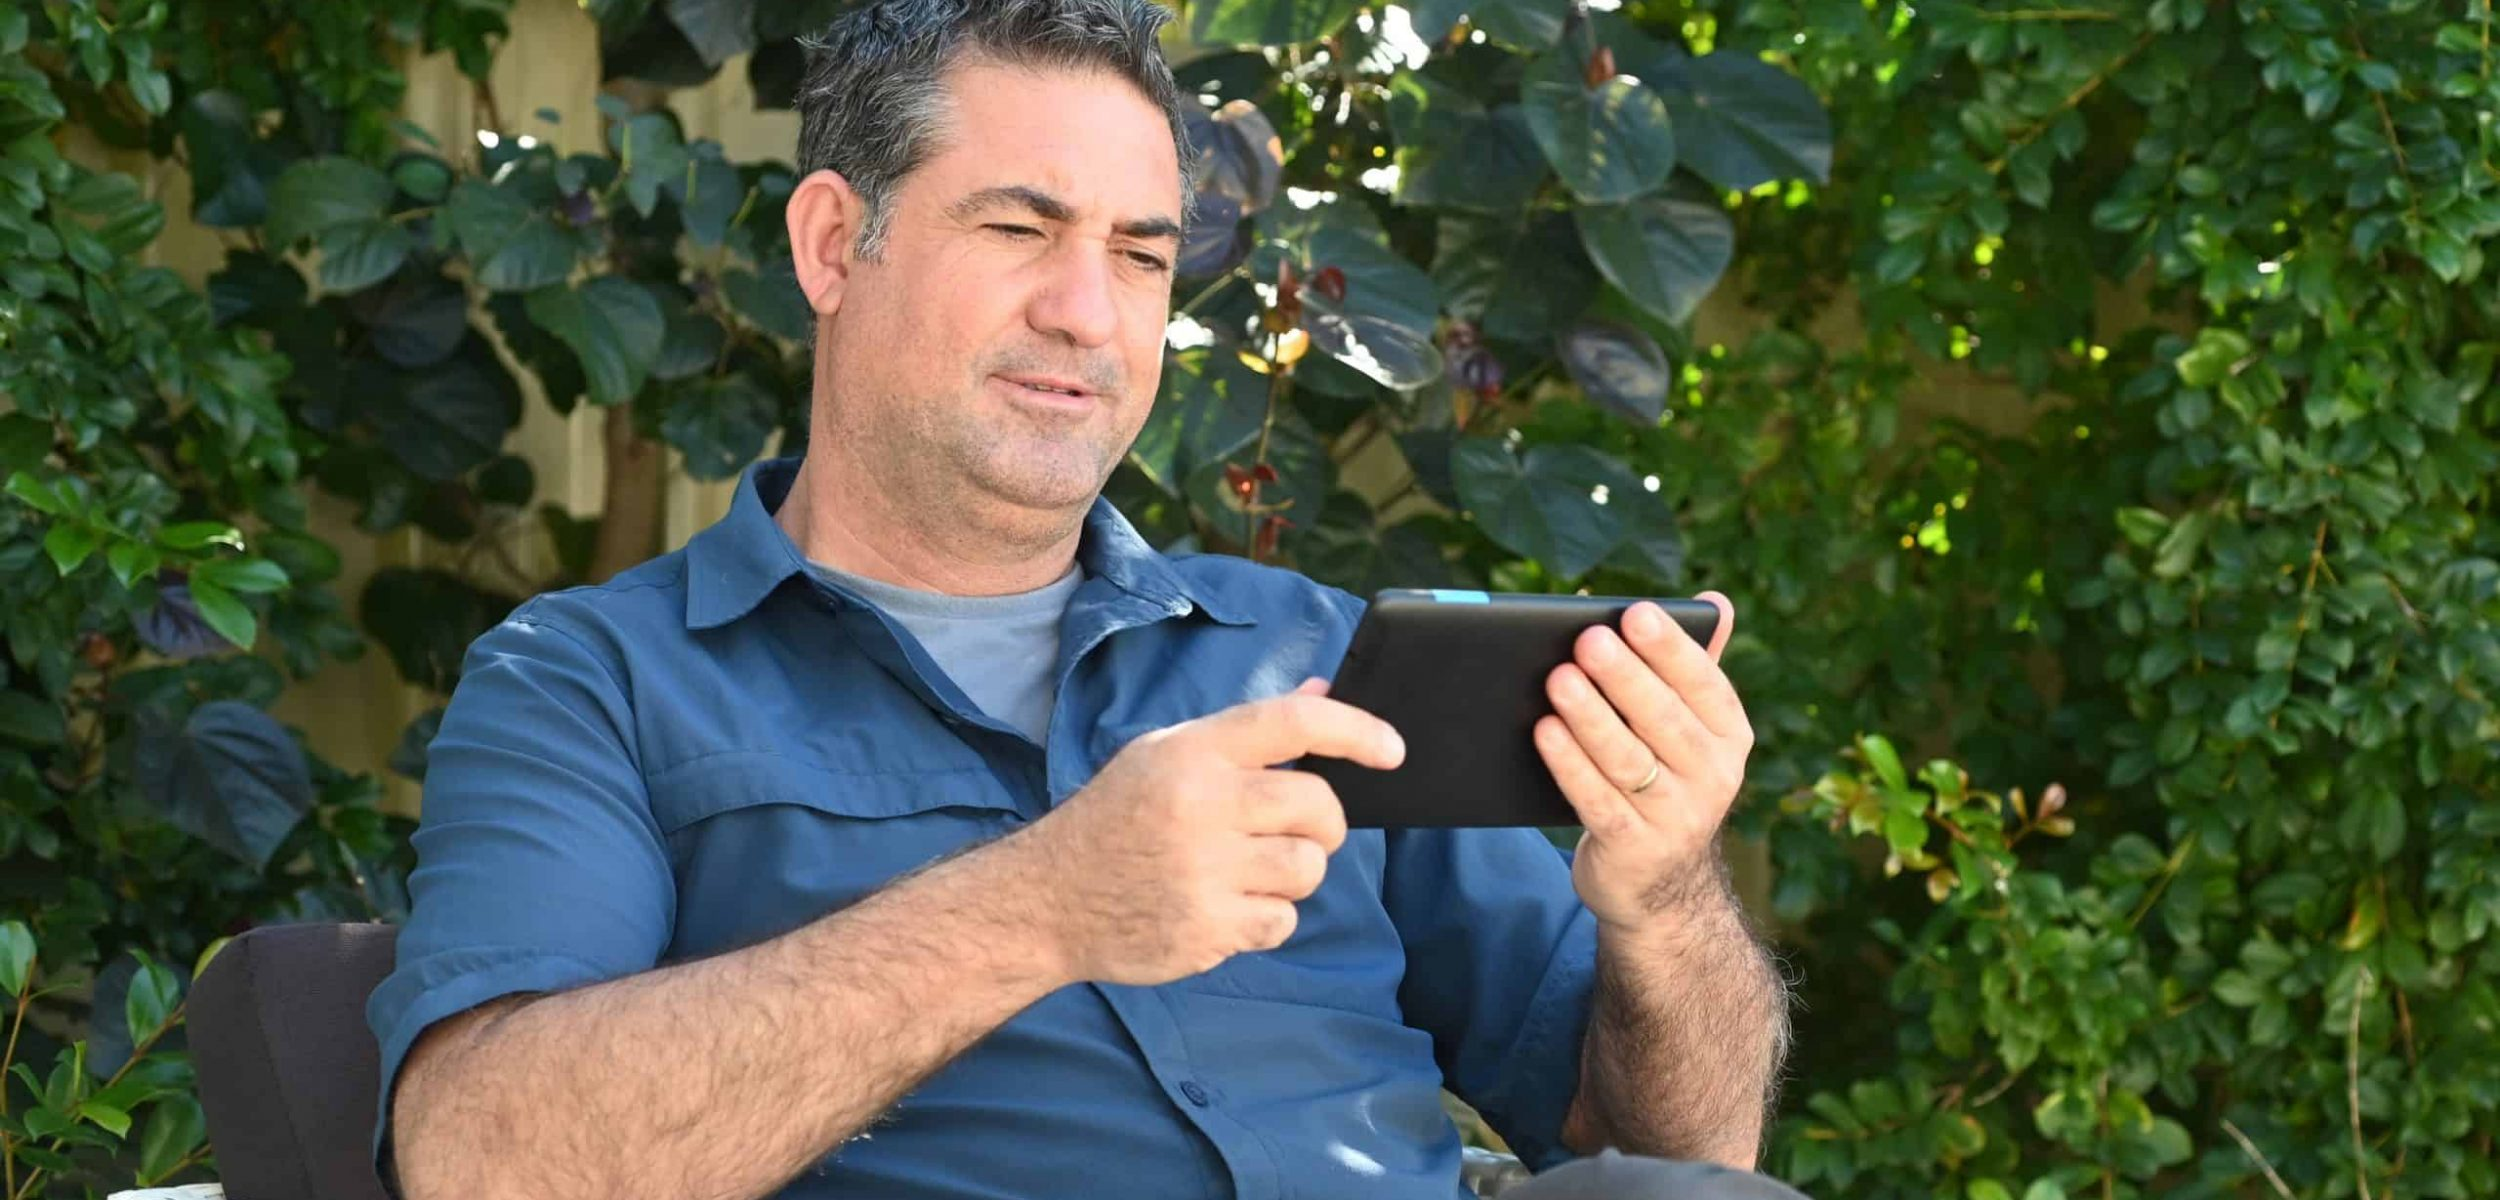 Relaxed,Mature,Adult,Man,(age,40-50),Reading,Or,Watching,Video